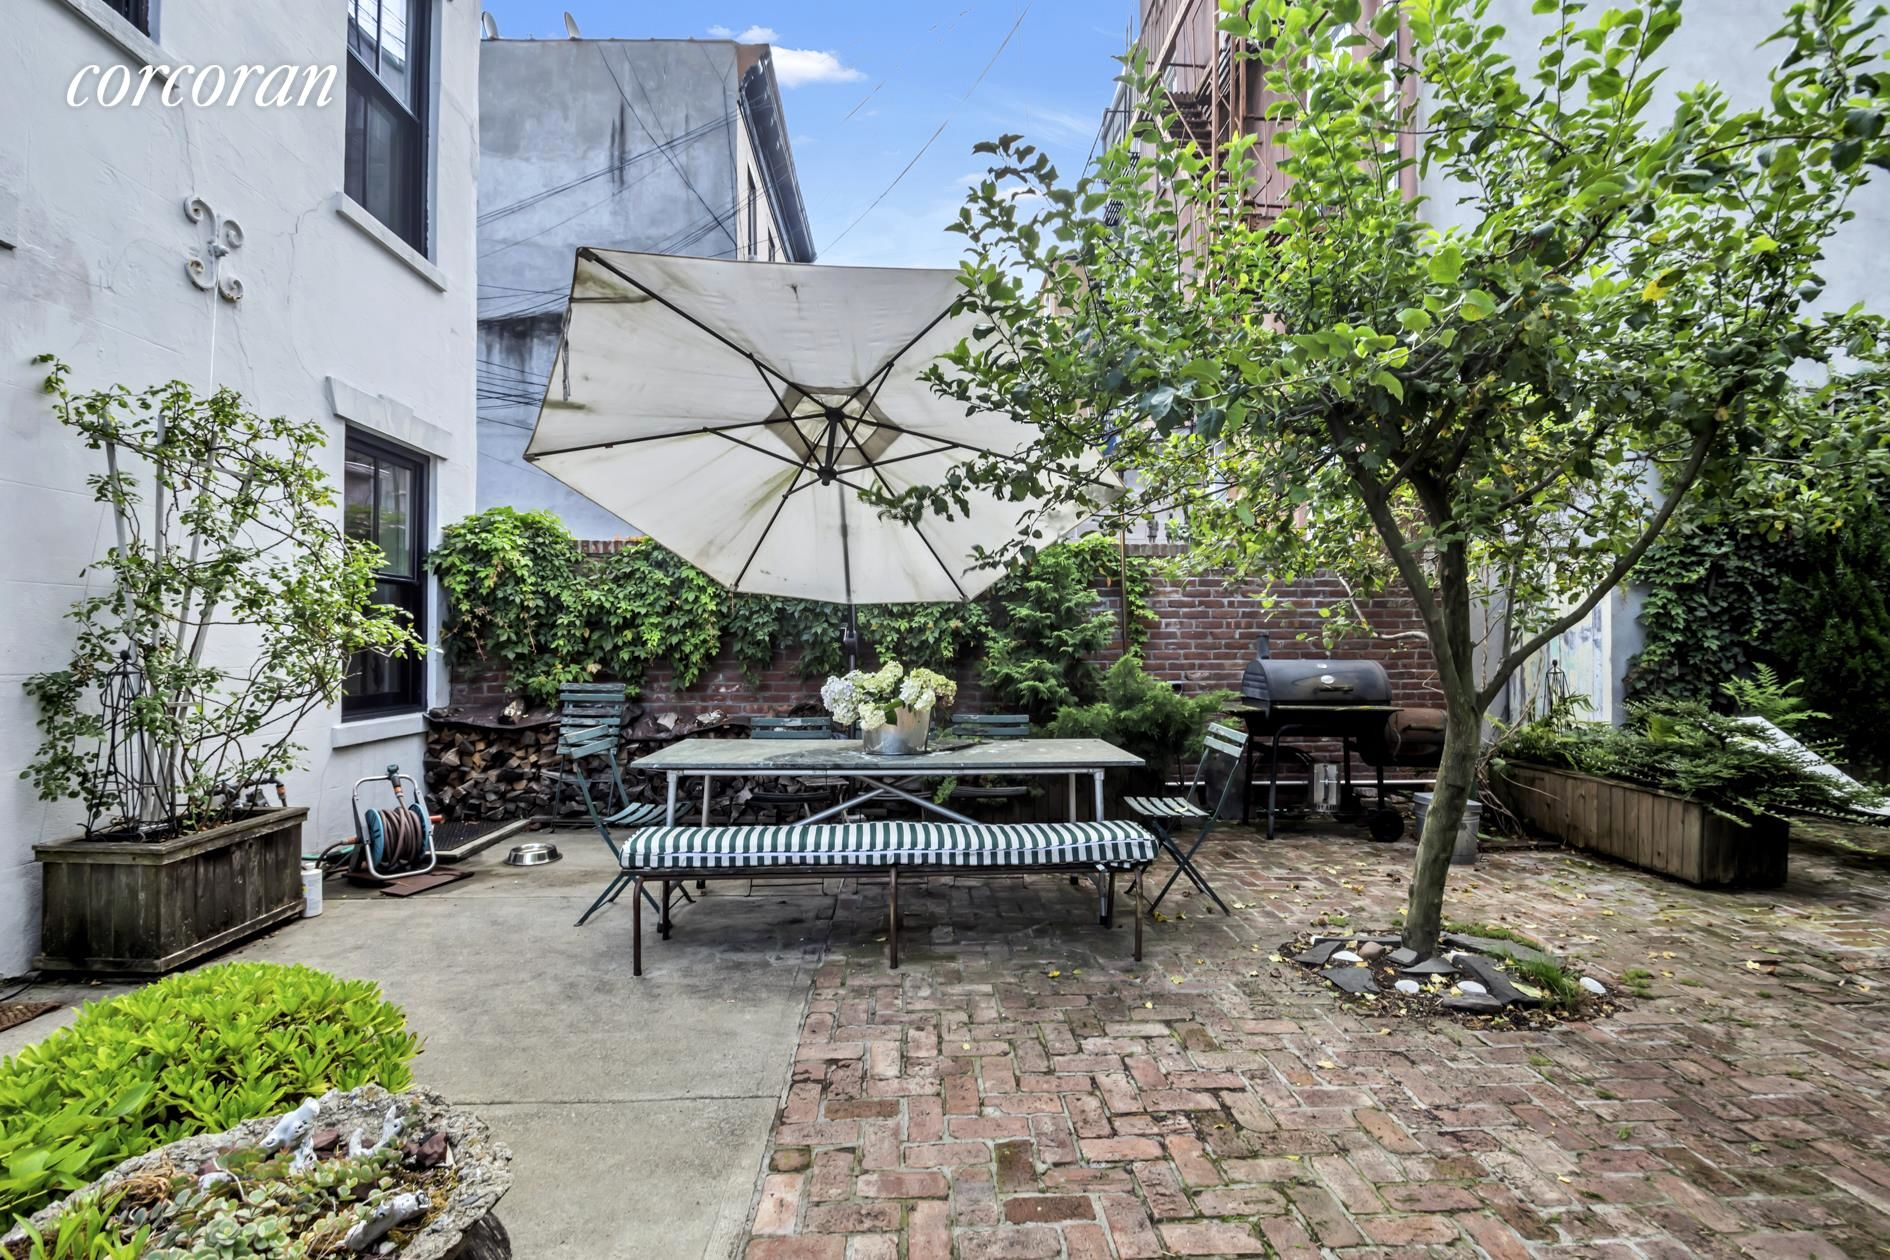 561 Union St Photo 19 - NYC-Real-Estate-668587